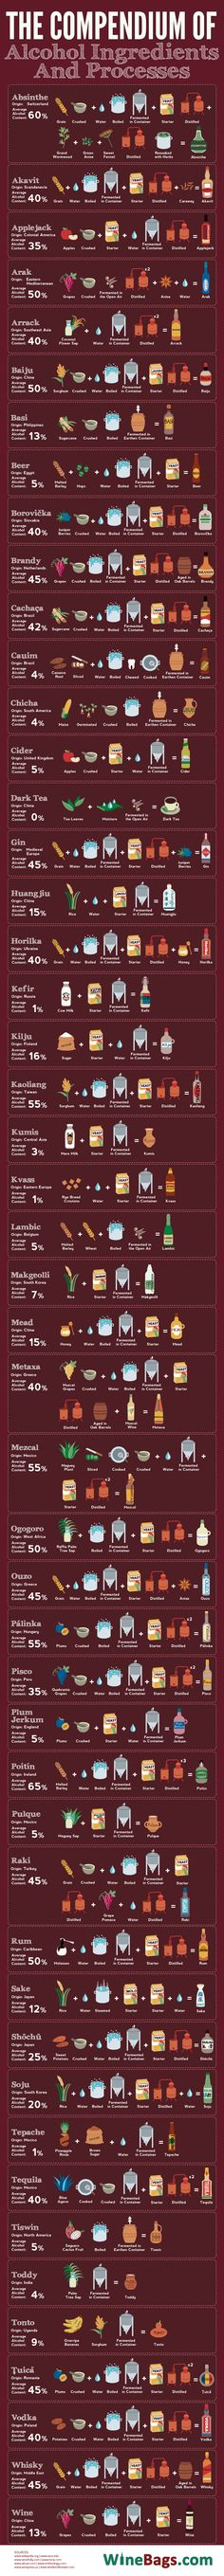 You're probably familiar with the general process behind how wine or beer are made, but if you're curious how absinthe is produced, or sake, or palinka, or rum, or even tequila, this fabulous graphic shows you, in beautiful broken down detail that's simple enough you may be tempted to try it yourself.